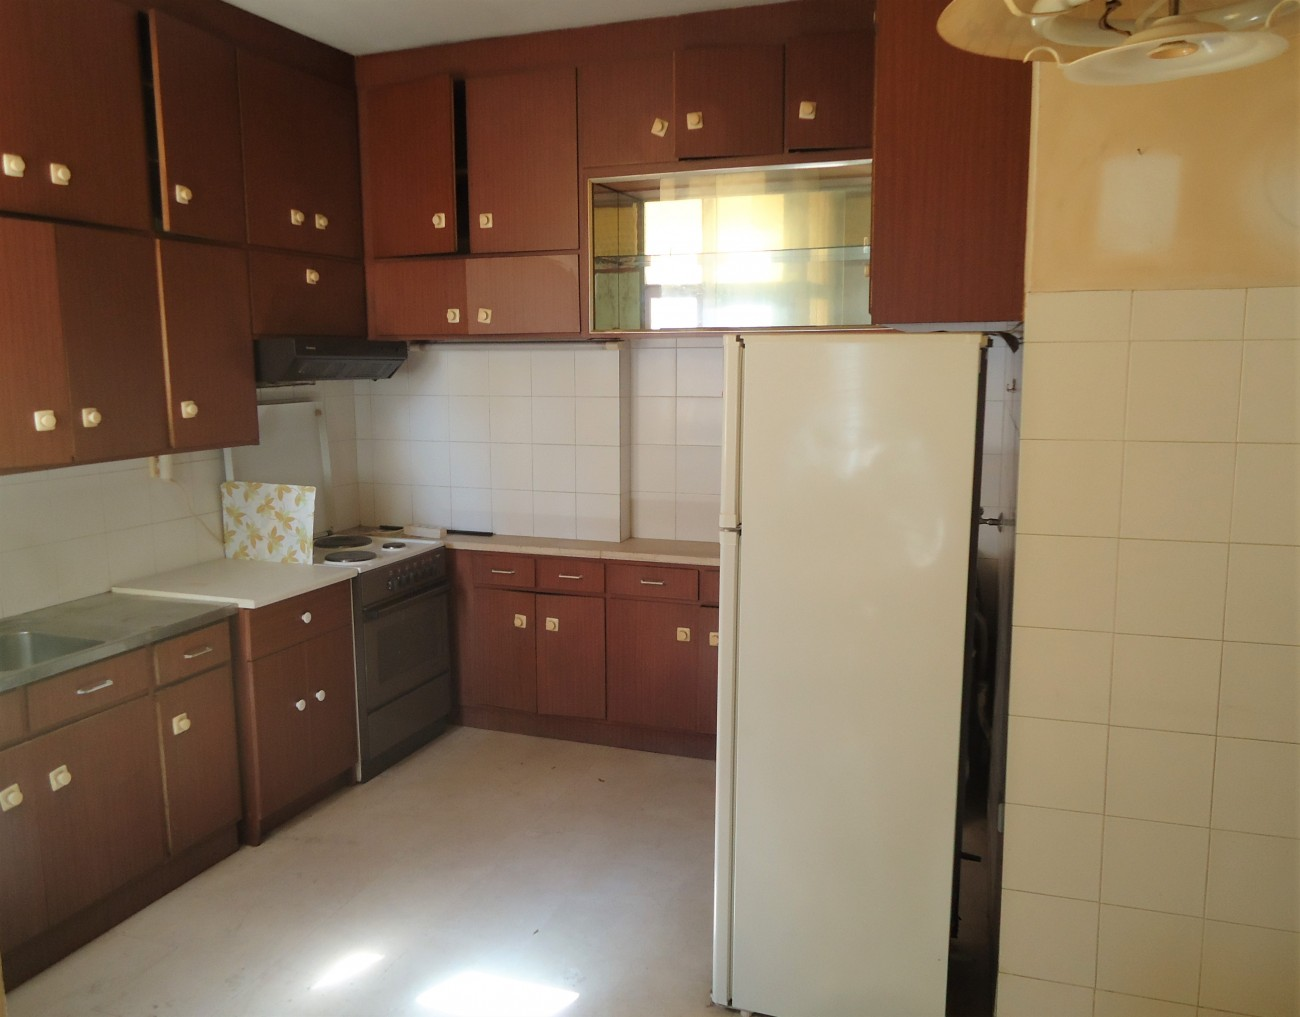 Residential Other for Sale in Kipseli, Athens City Center, Greece